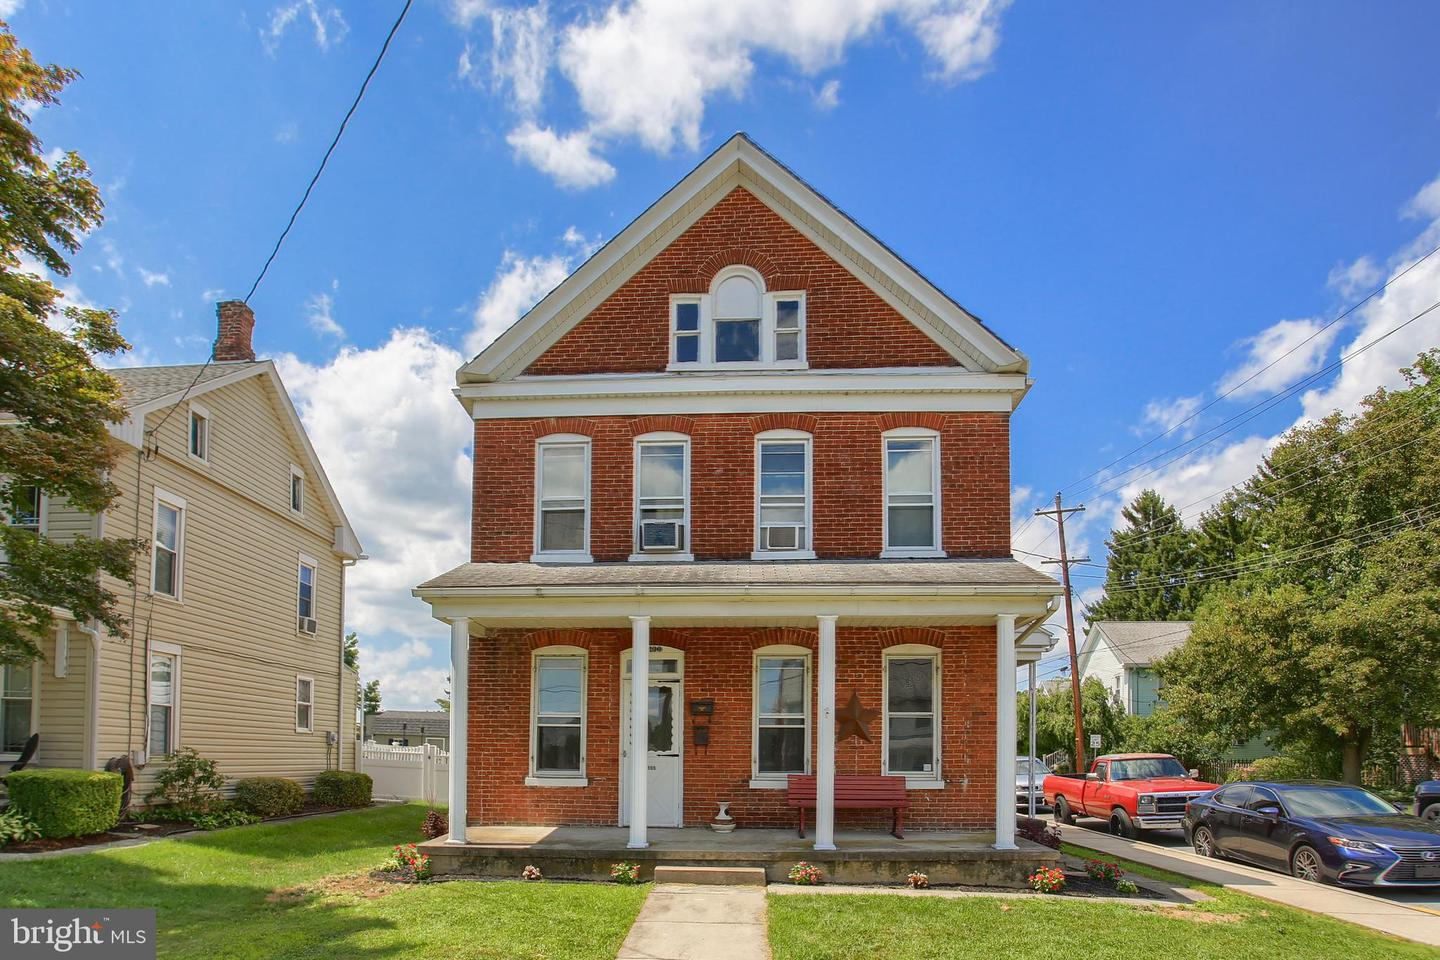 Duplex Homes for Sale at Hellam, Pennsylvania 17406 United States